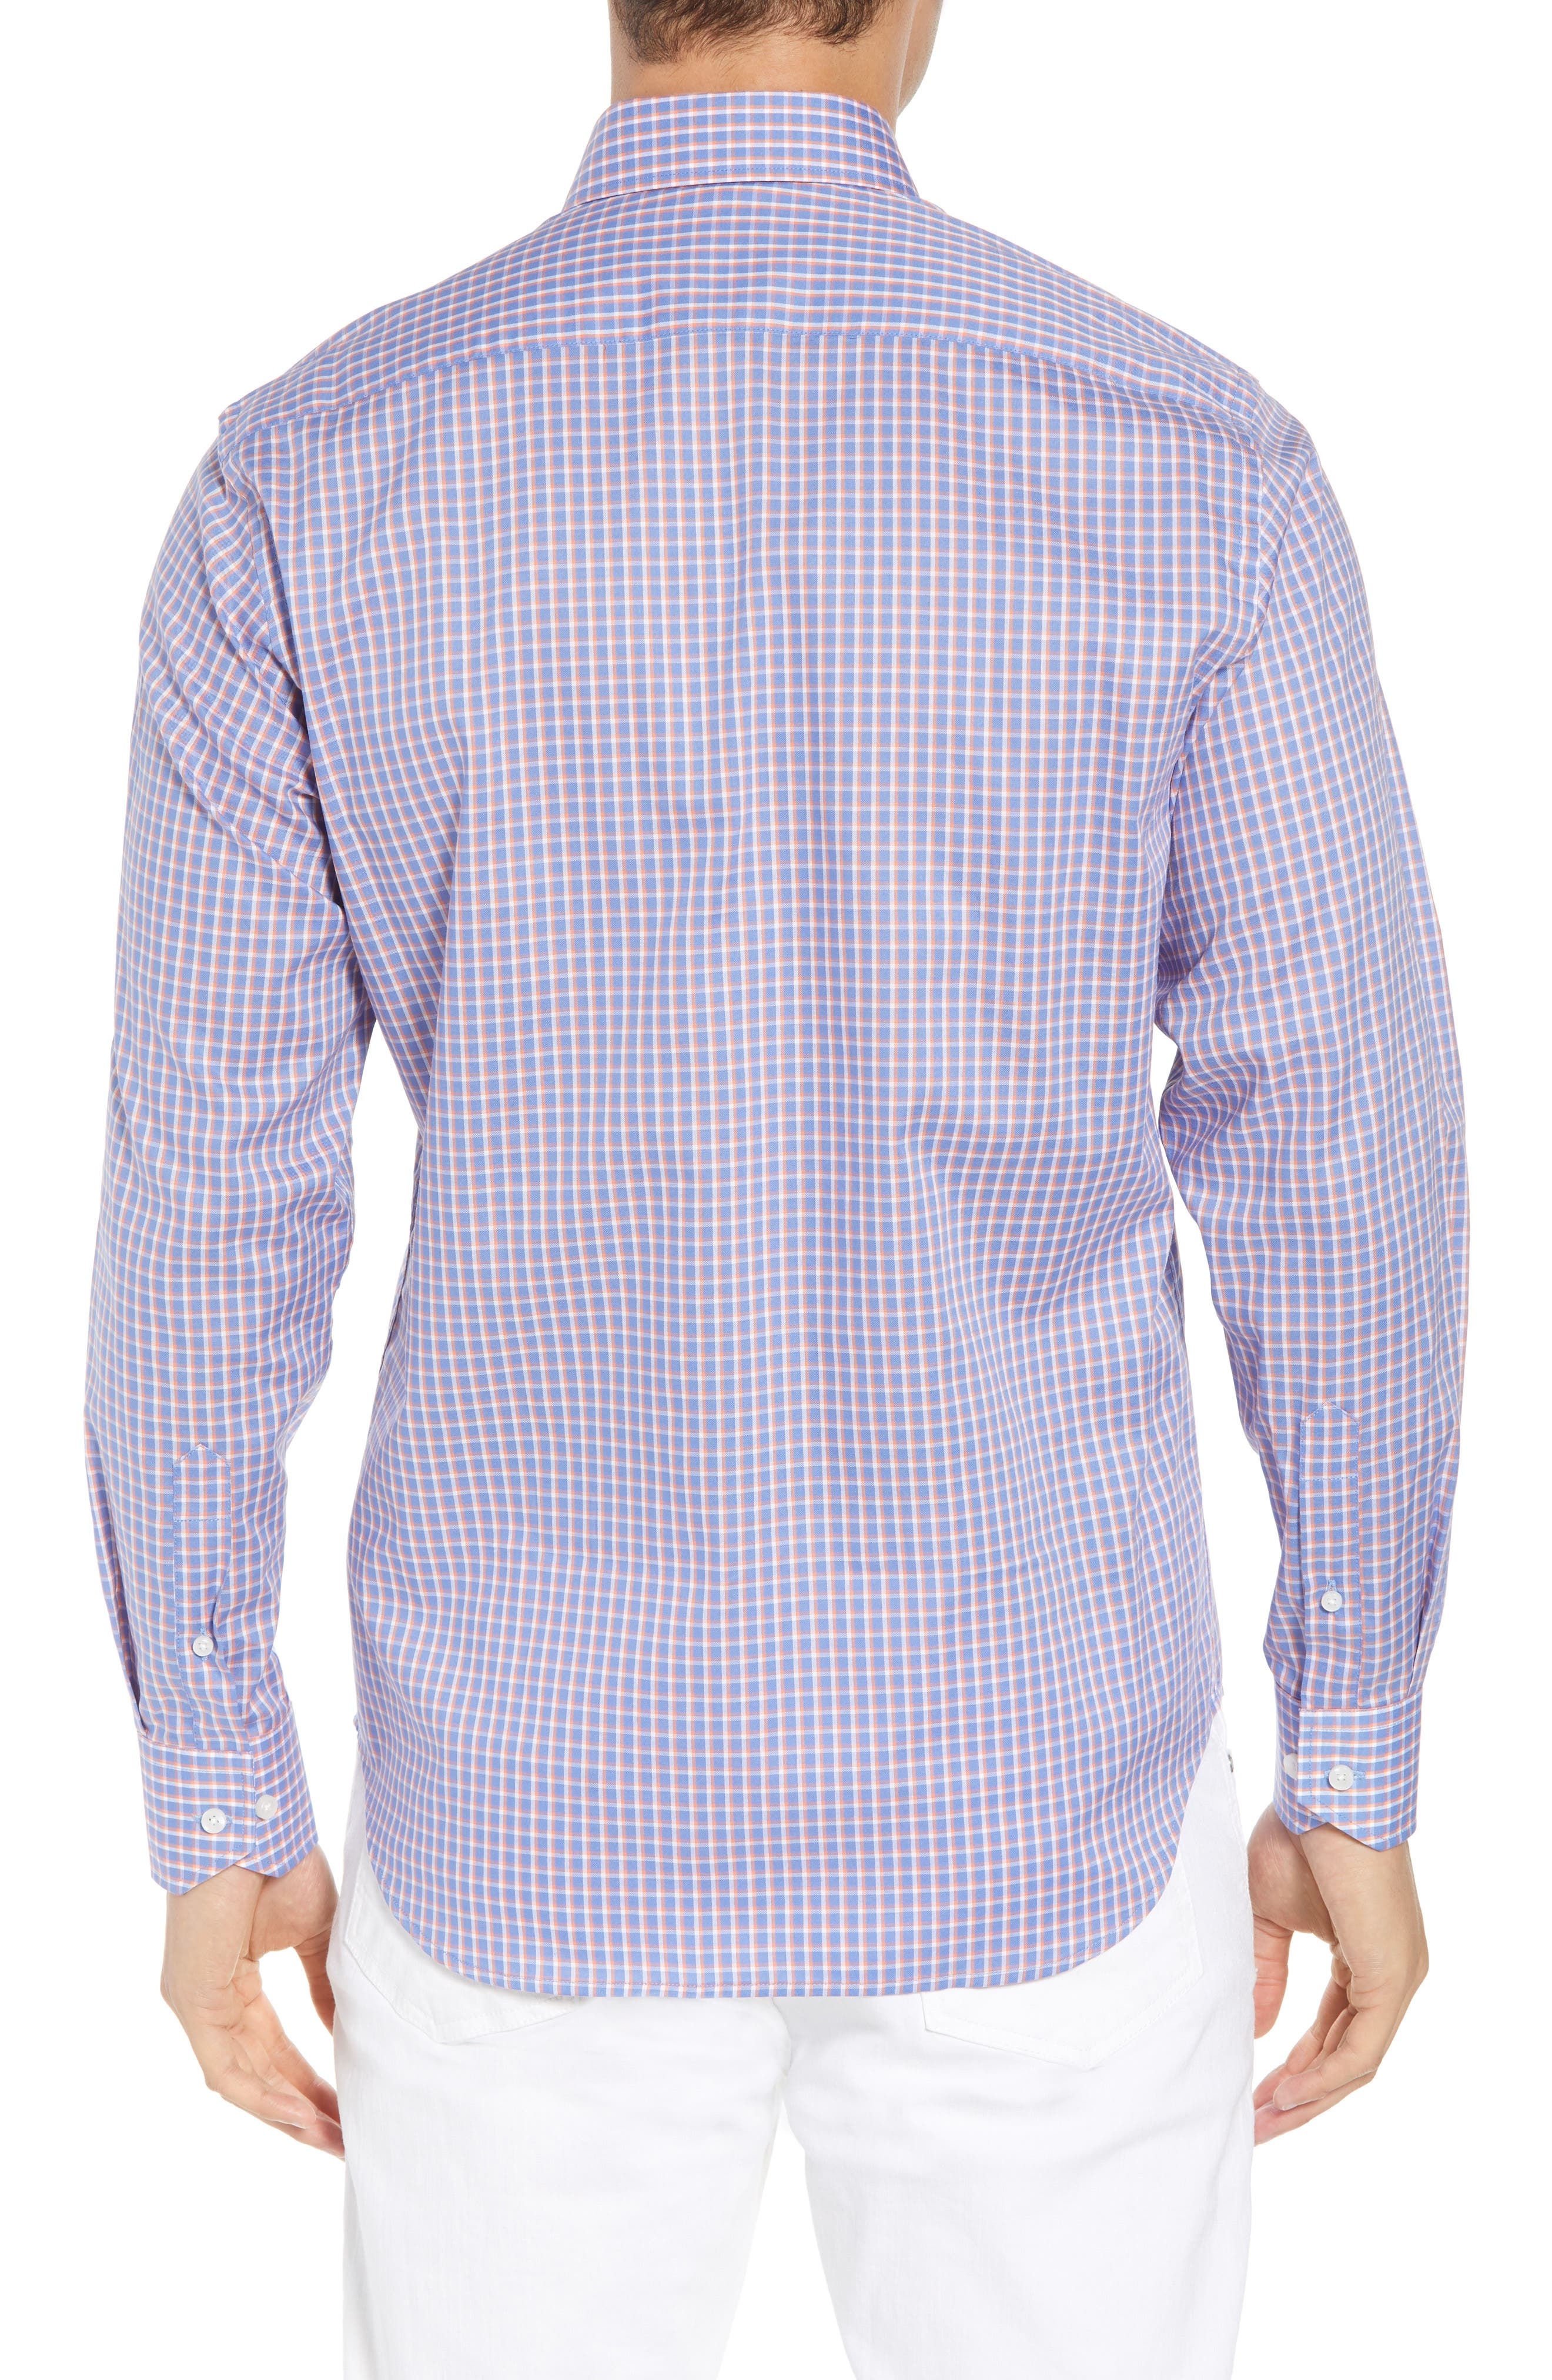 Jaie Regular Fit Check Sport Shirt,                             Alternate thumbnail 2, color,                             400